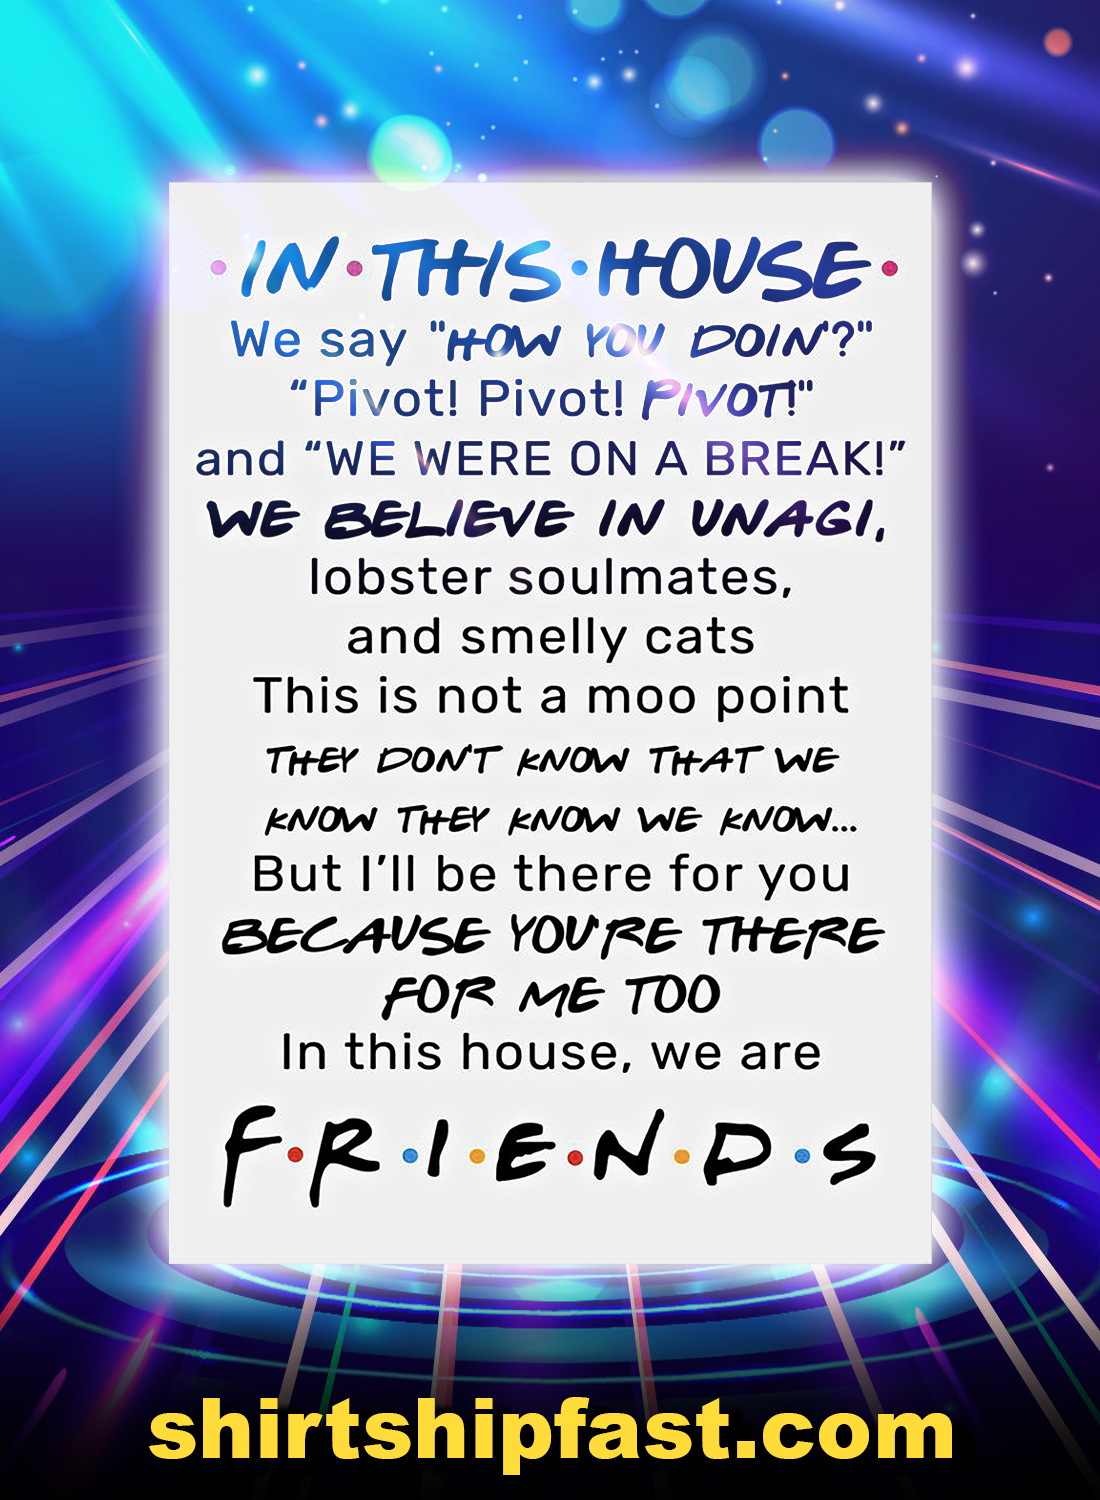 Friends in this house poster